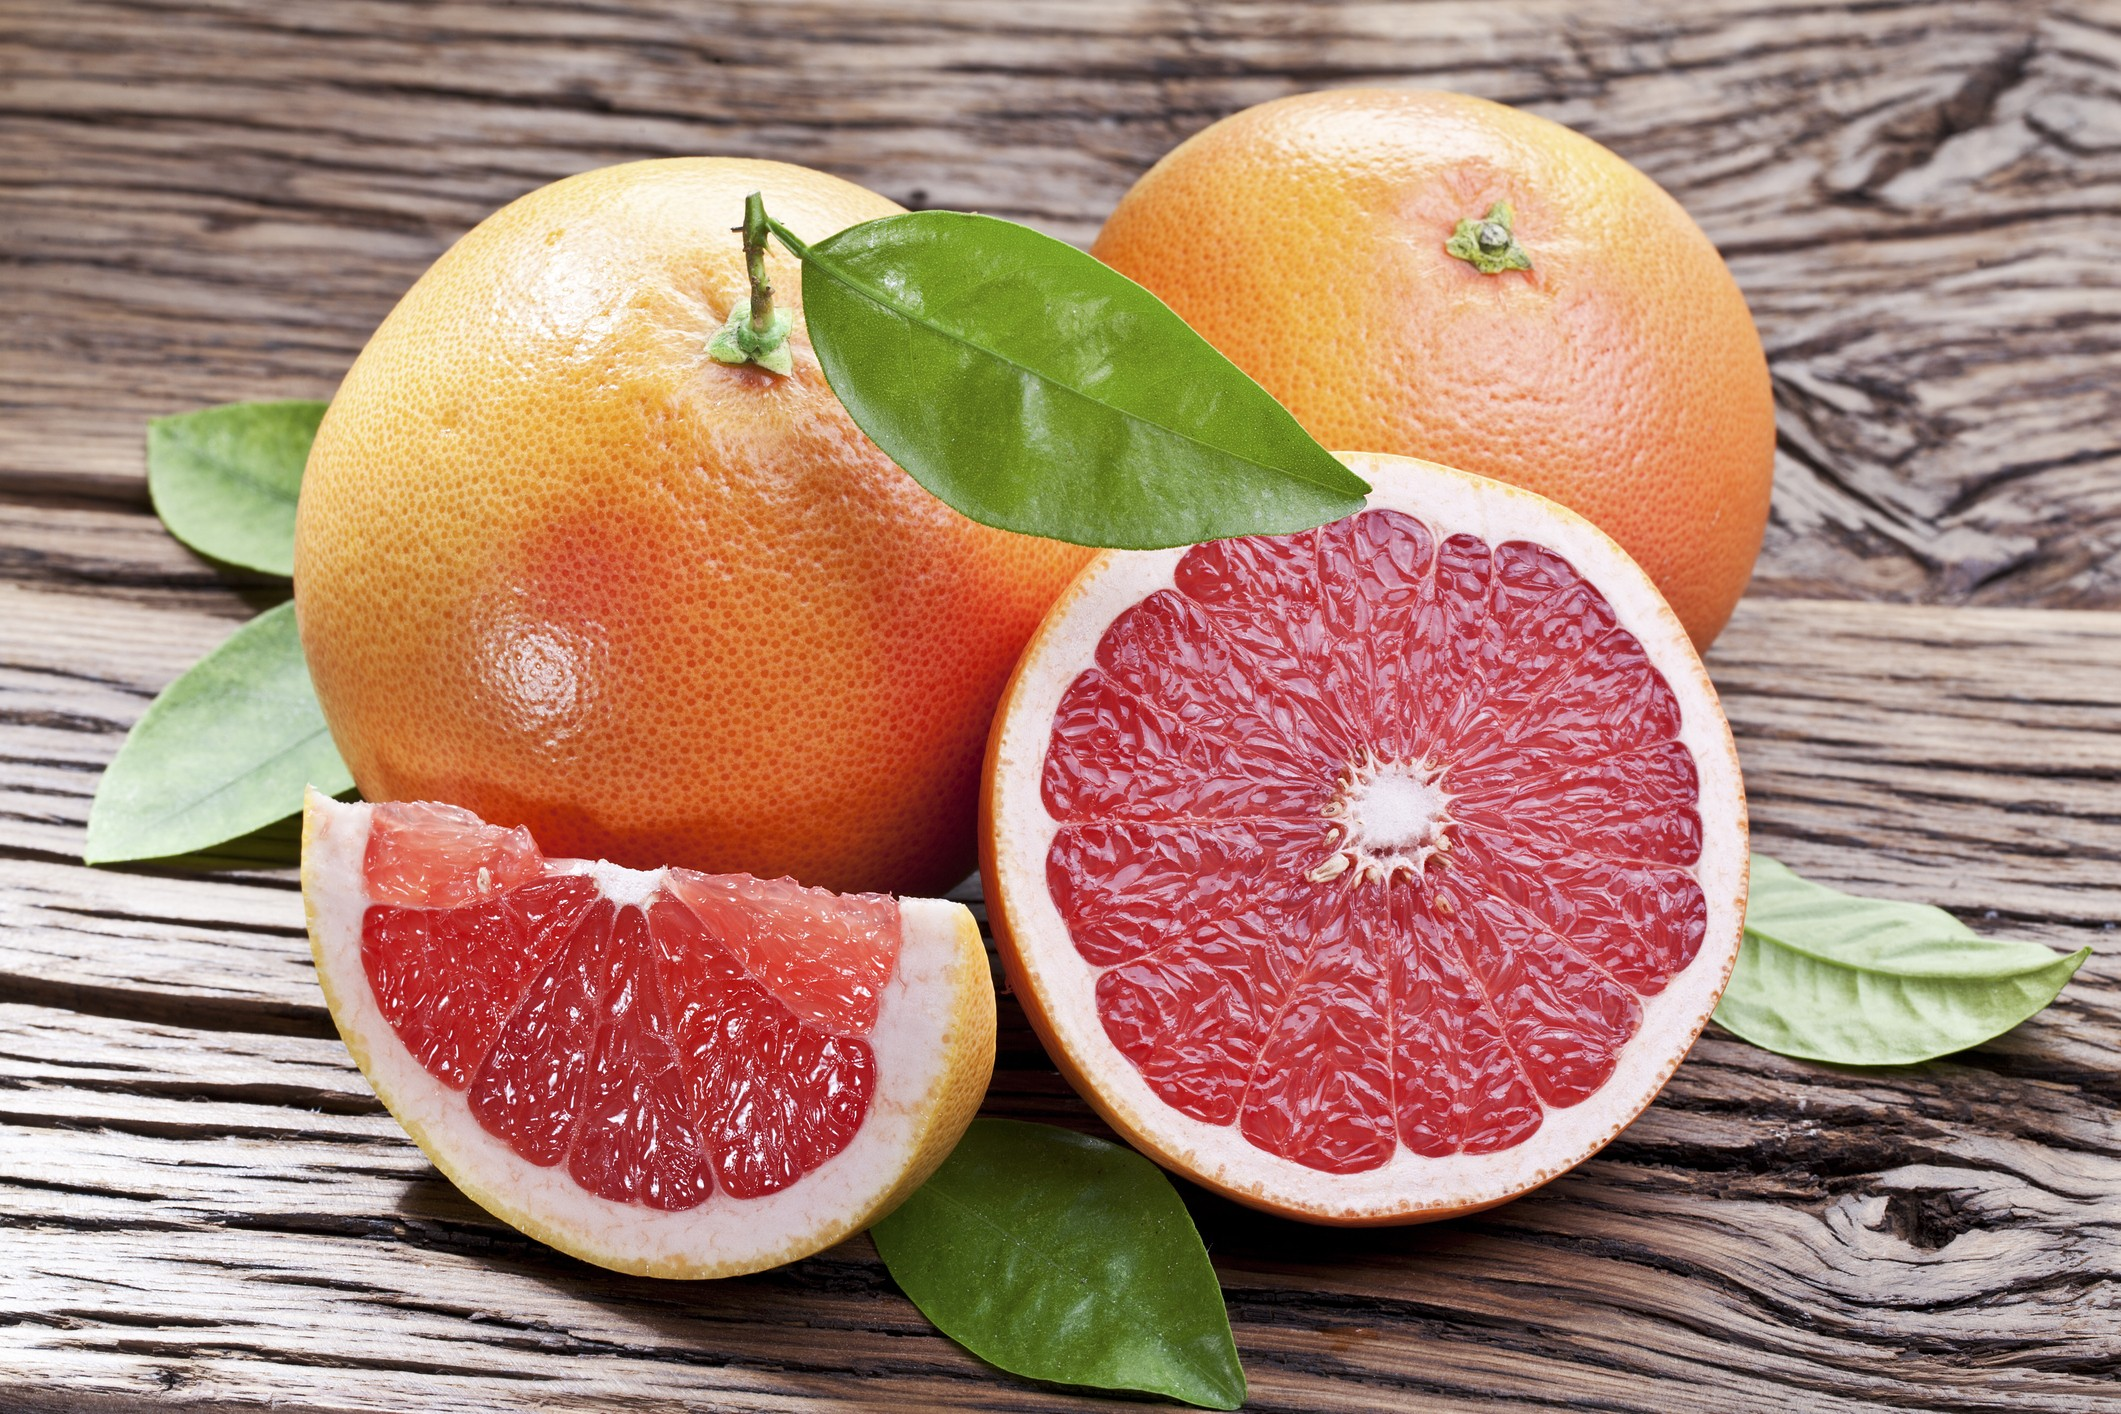 Grapefruits with leaves on a wooden table.